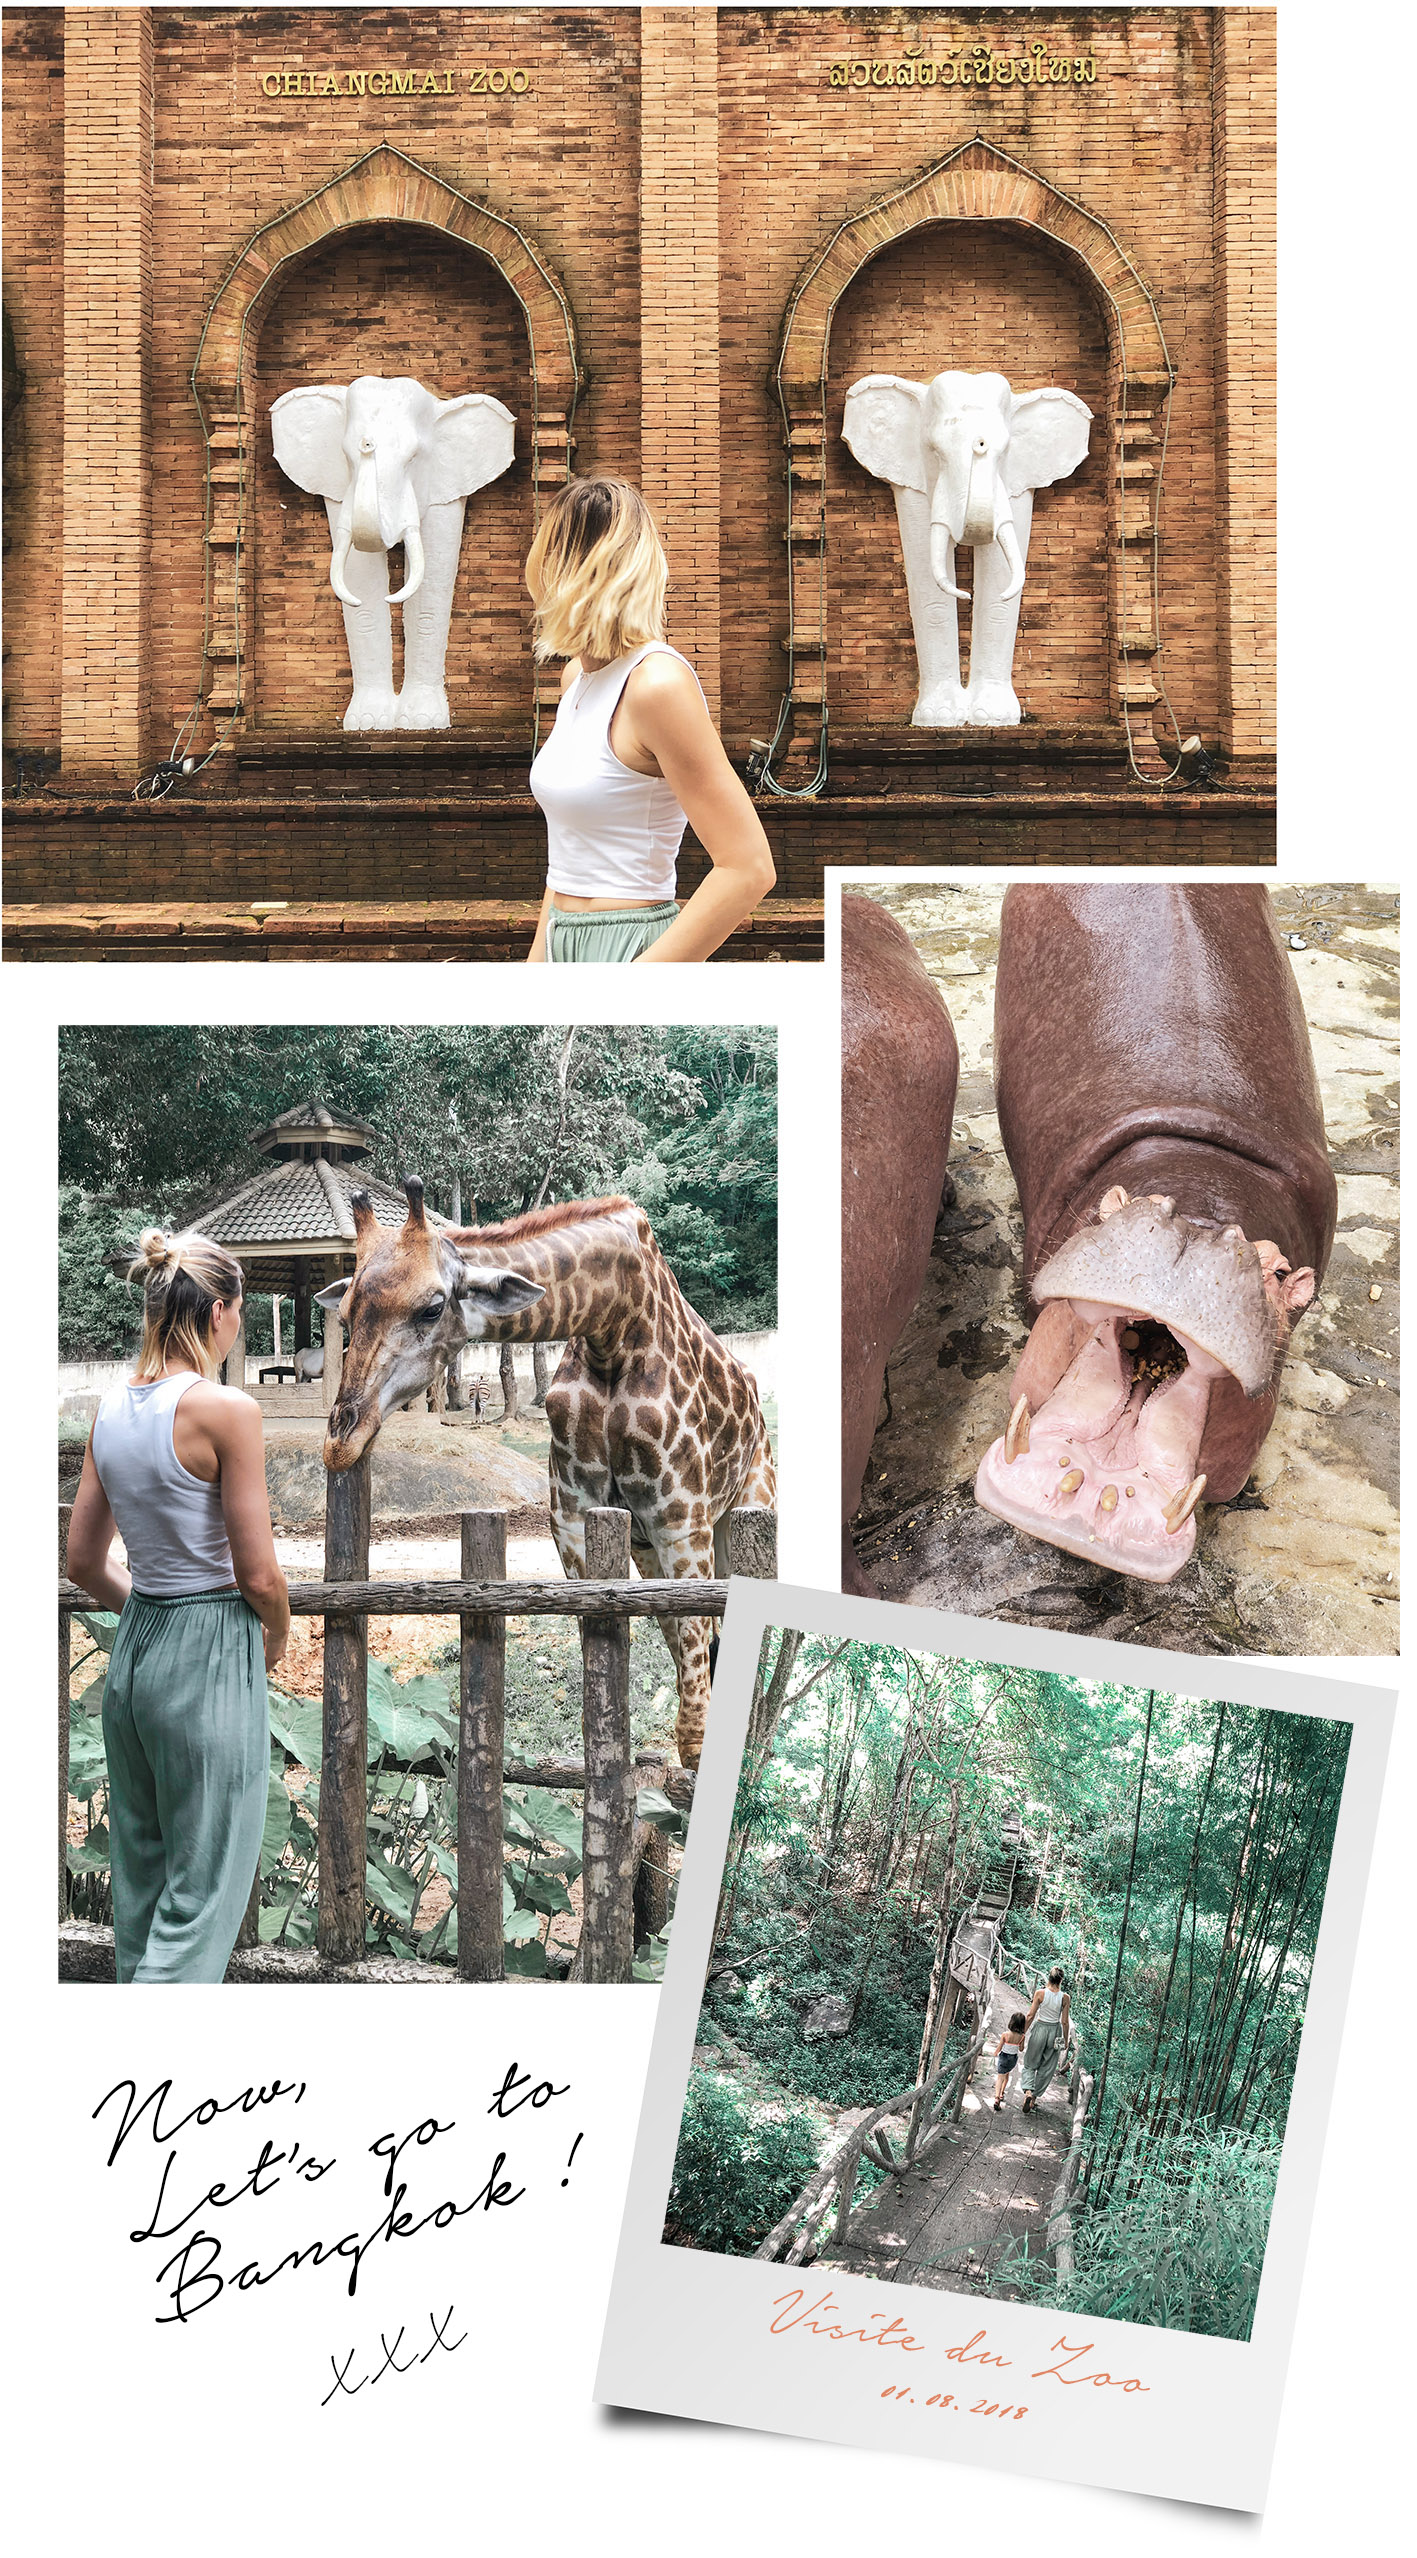 visite-zoo-chiang-mai